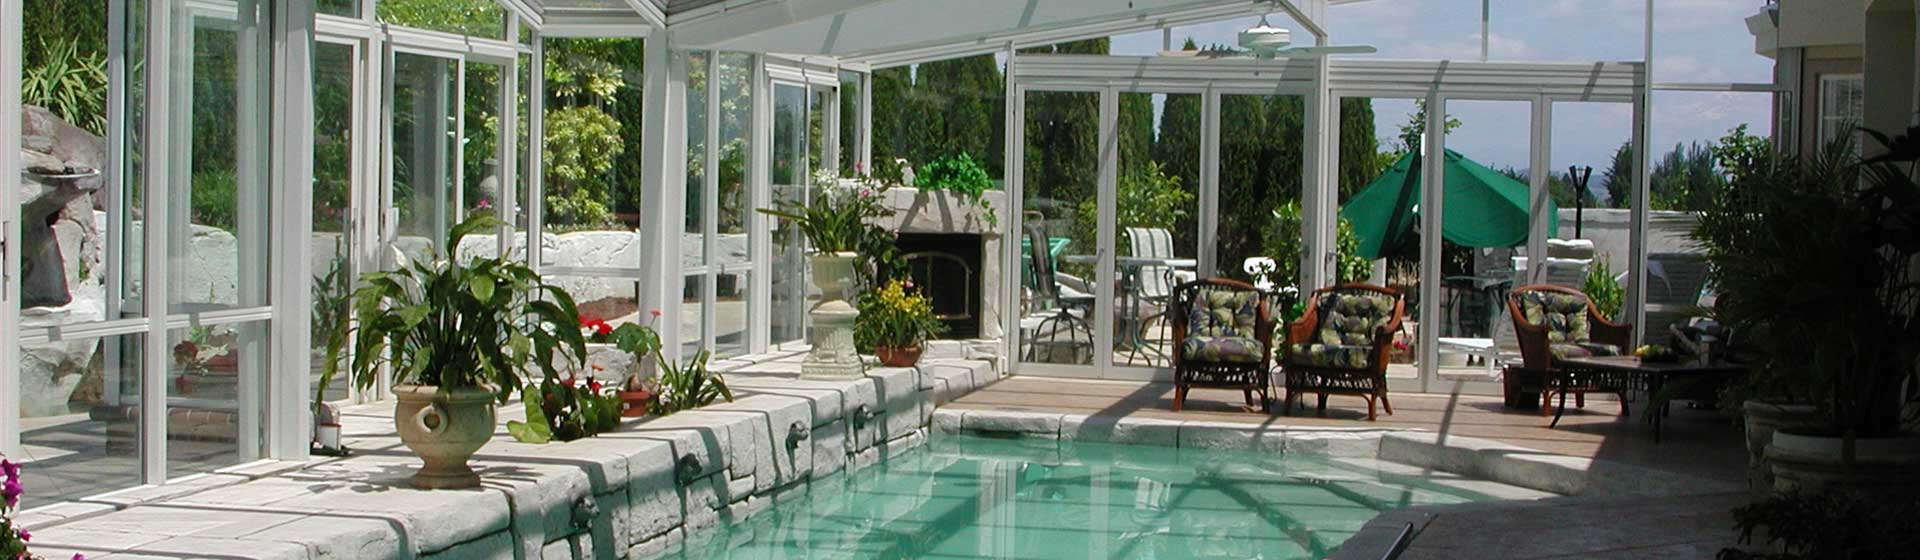 pool-spa-enclosures